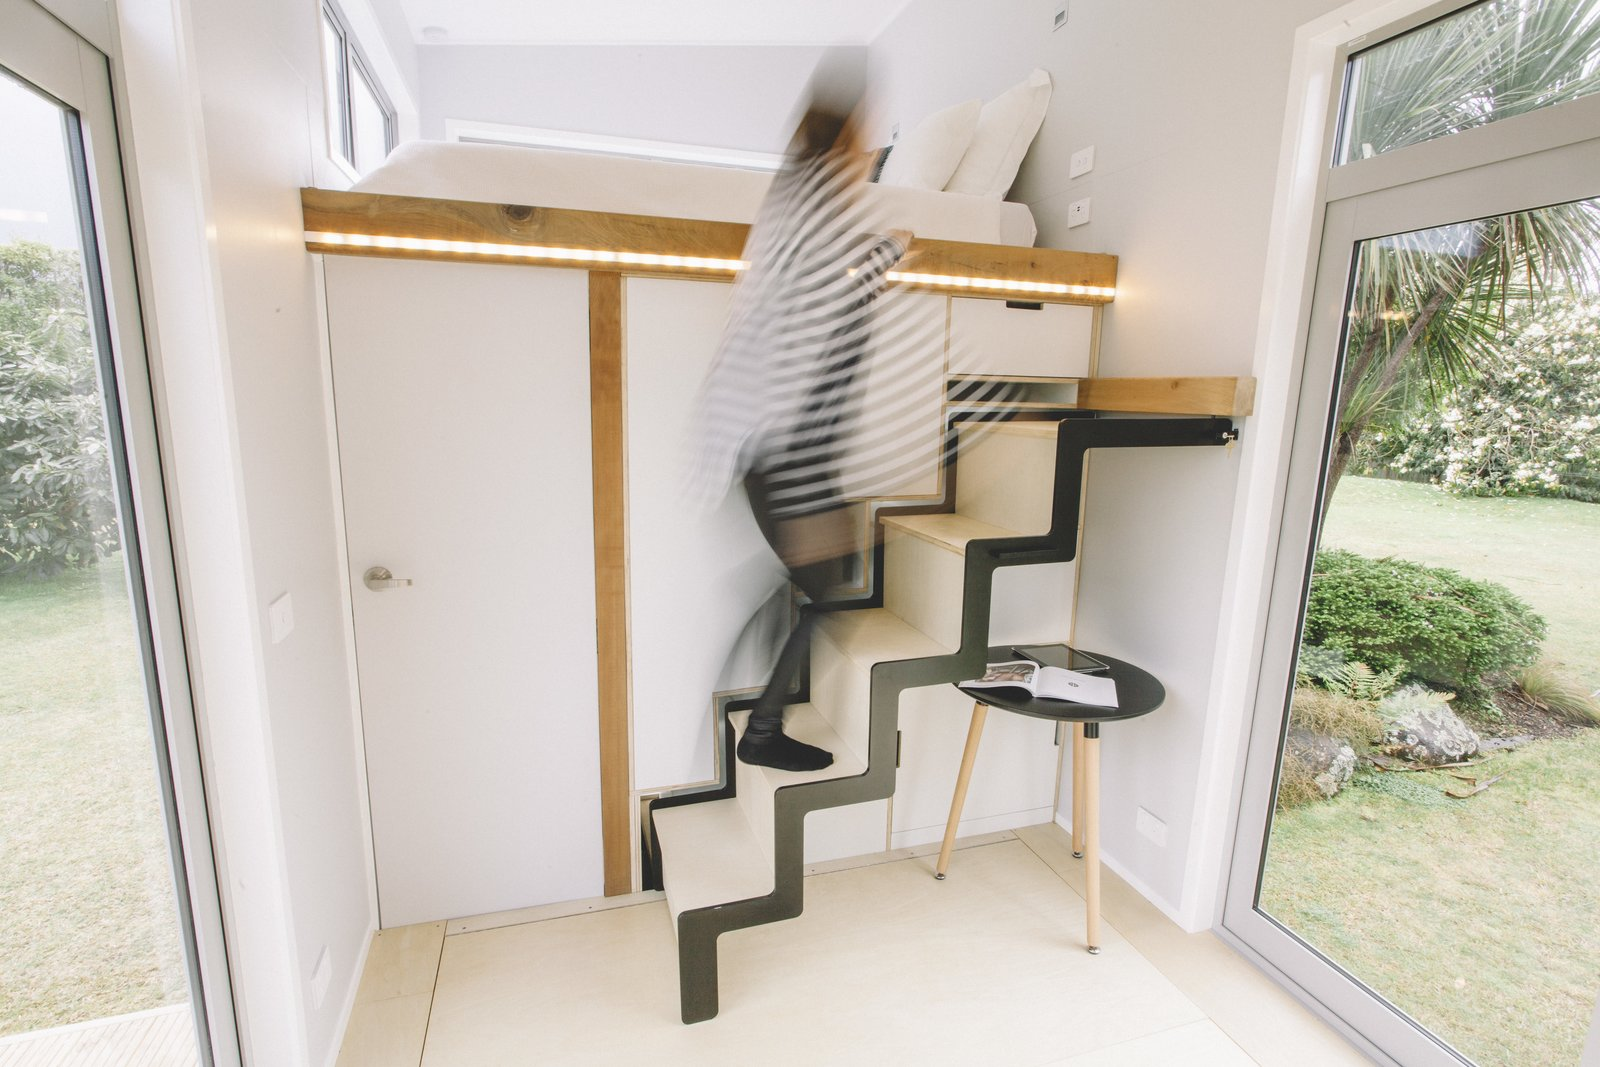 Millennial Tiny House interior staircase extended